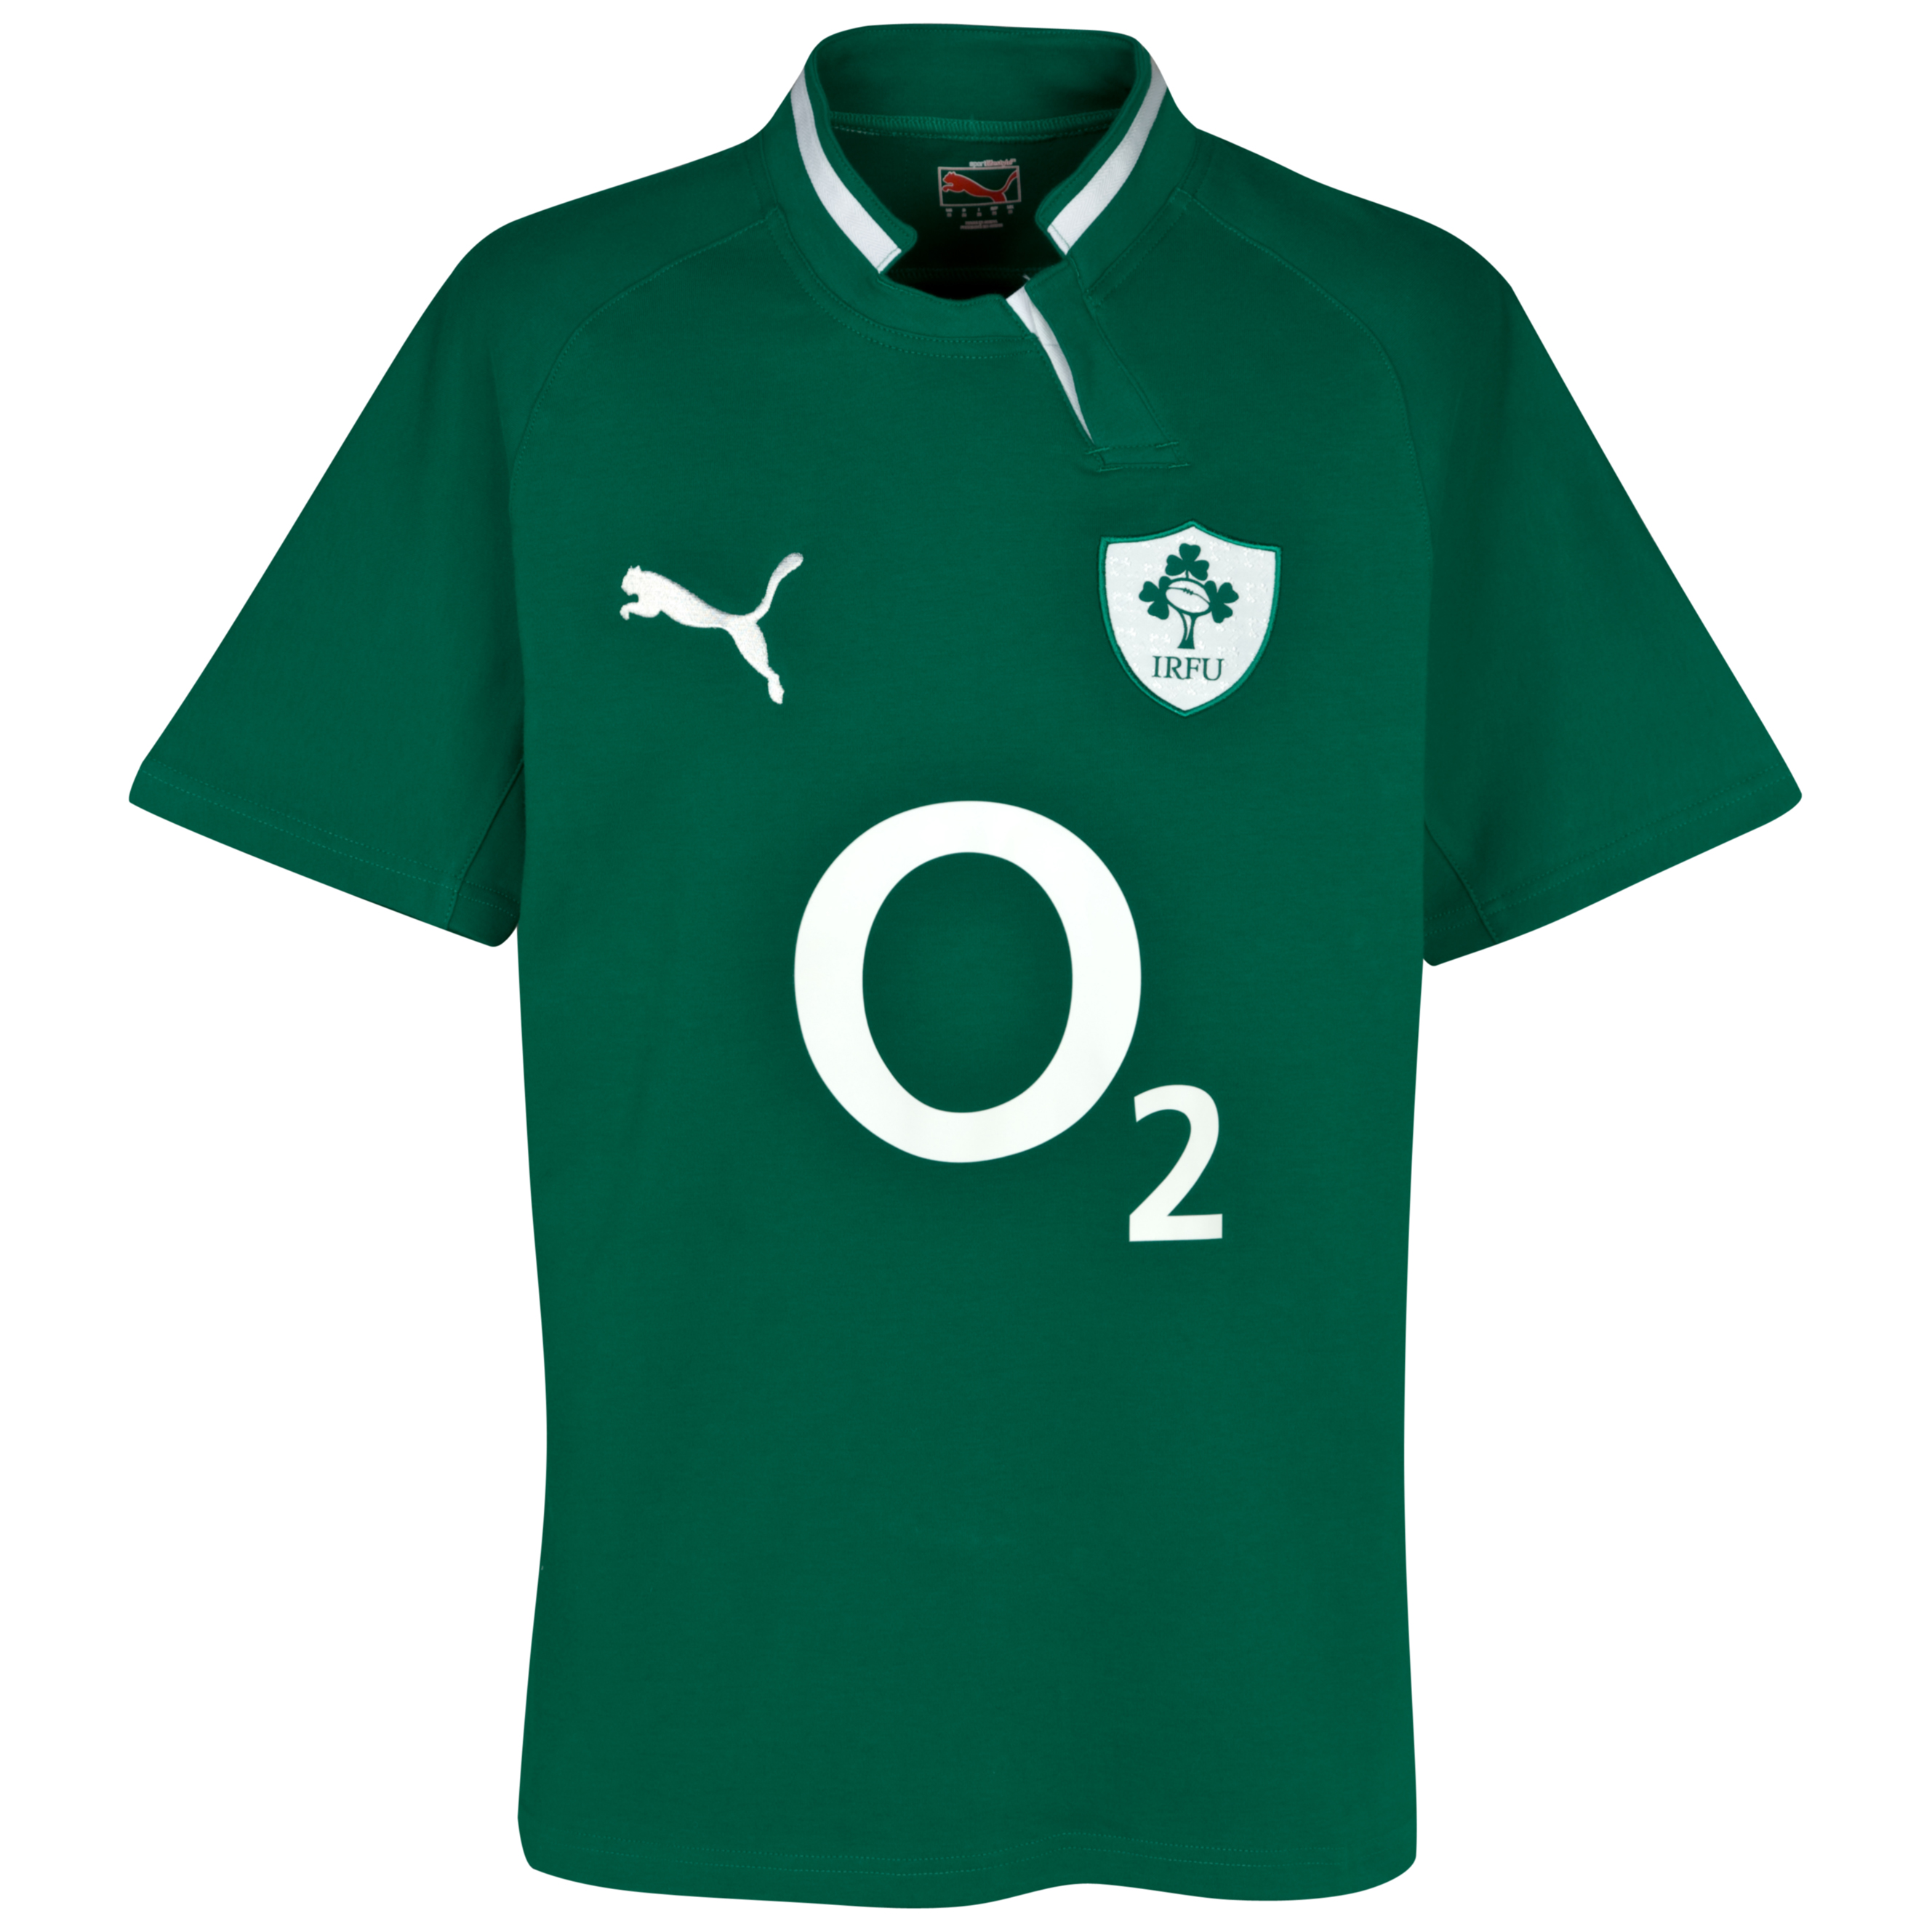 Ireland Rugby Cotton Home Shirt 2011/13. for 40€